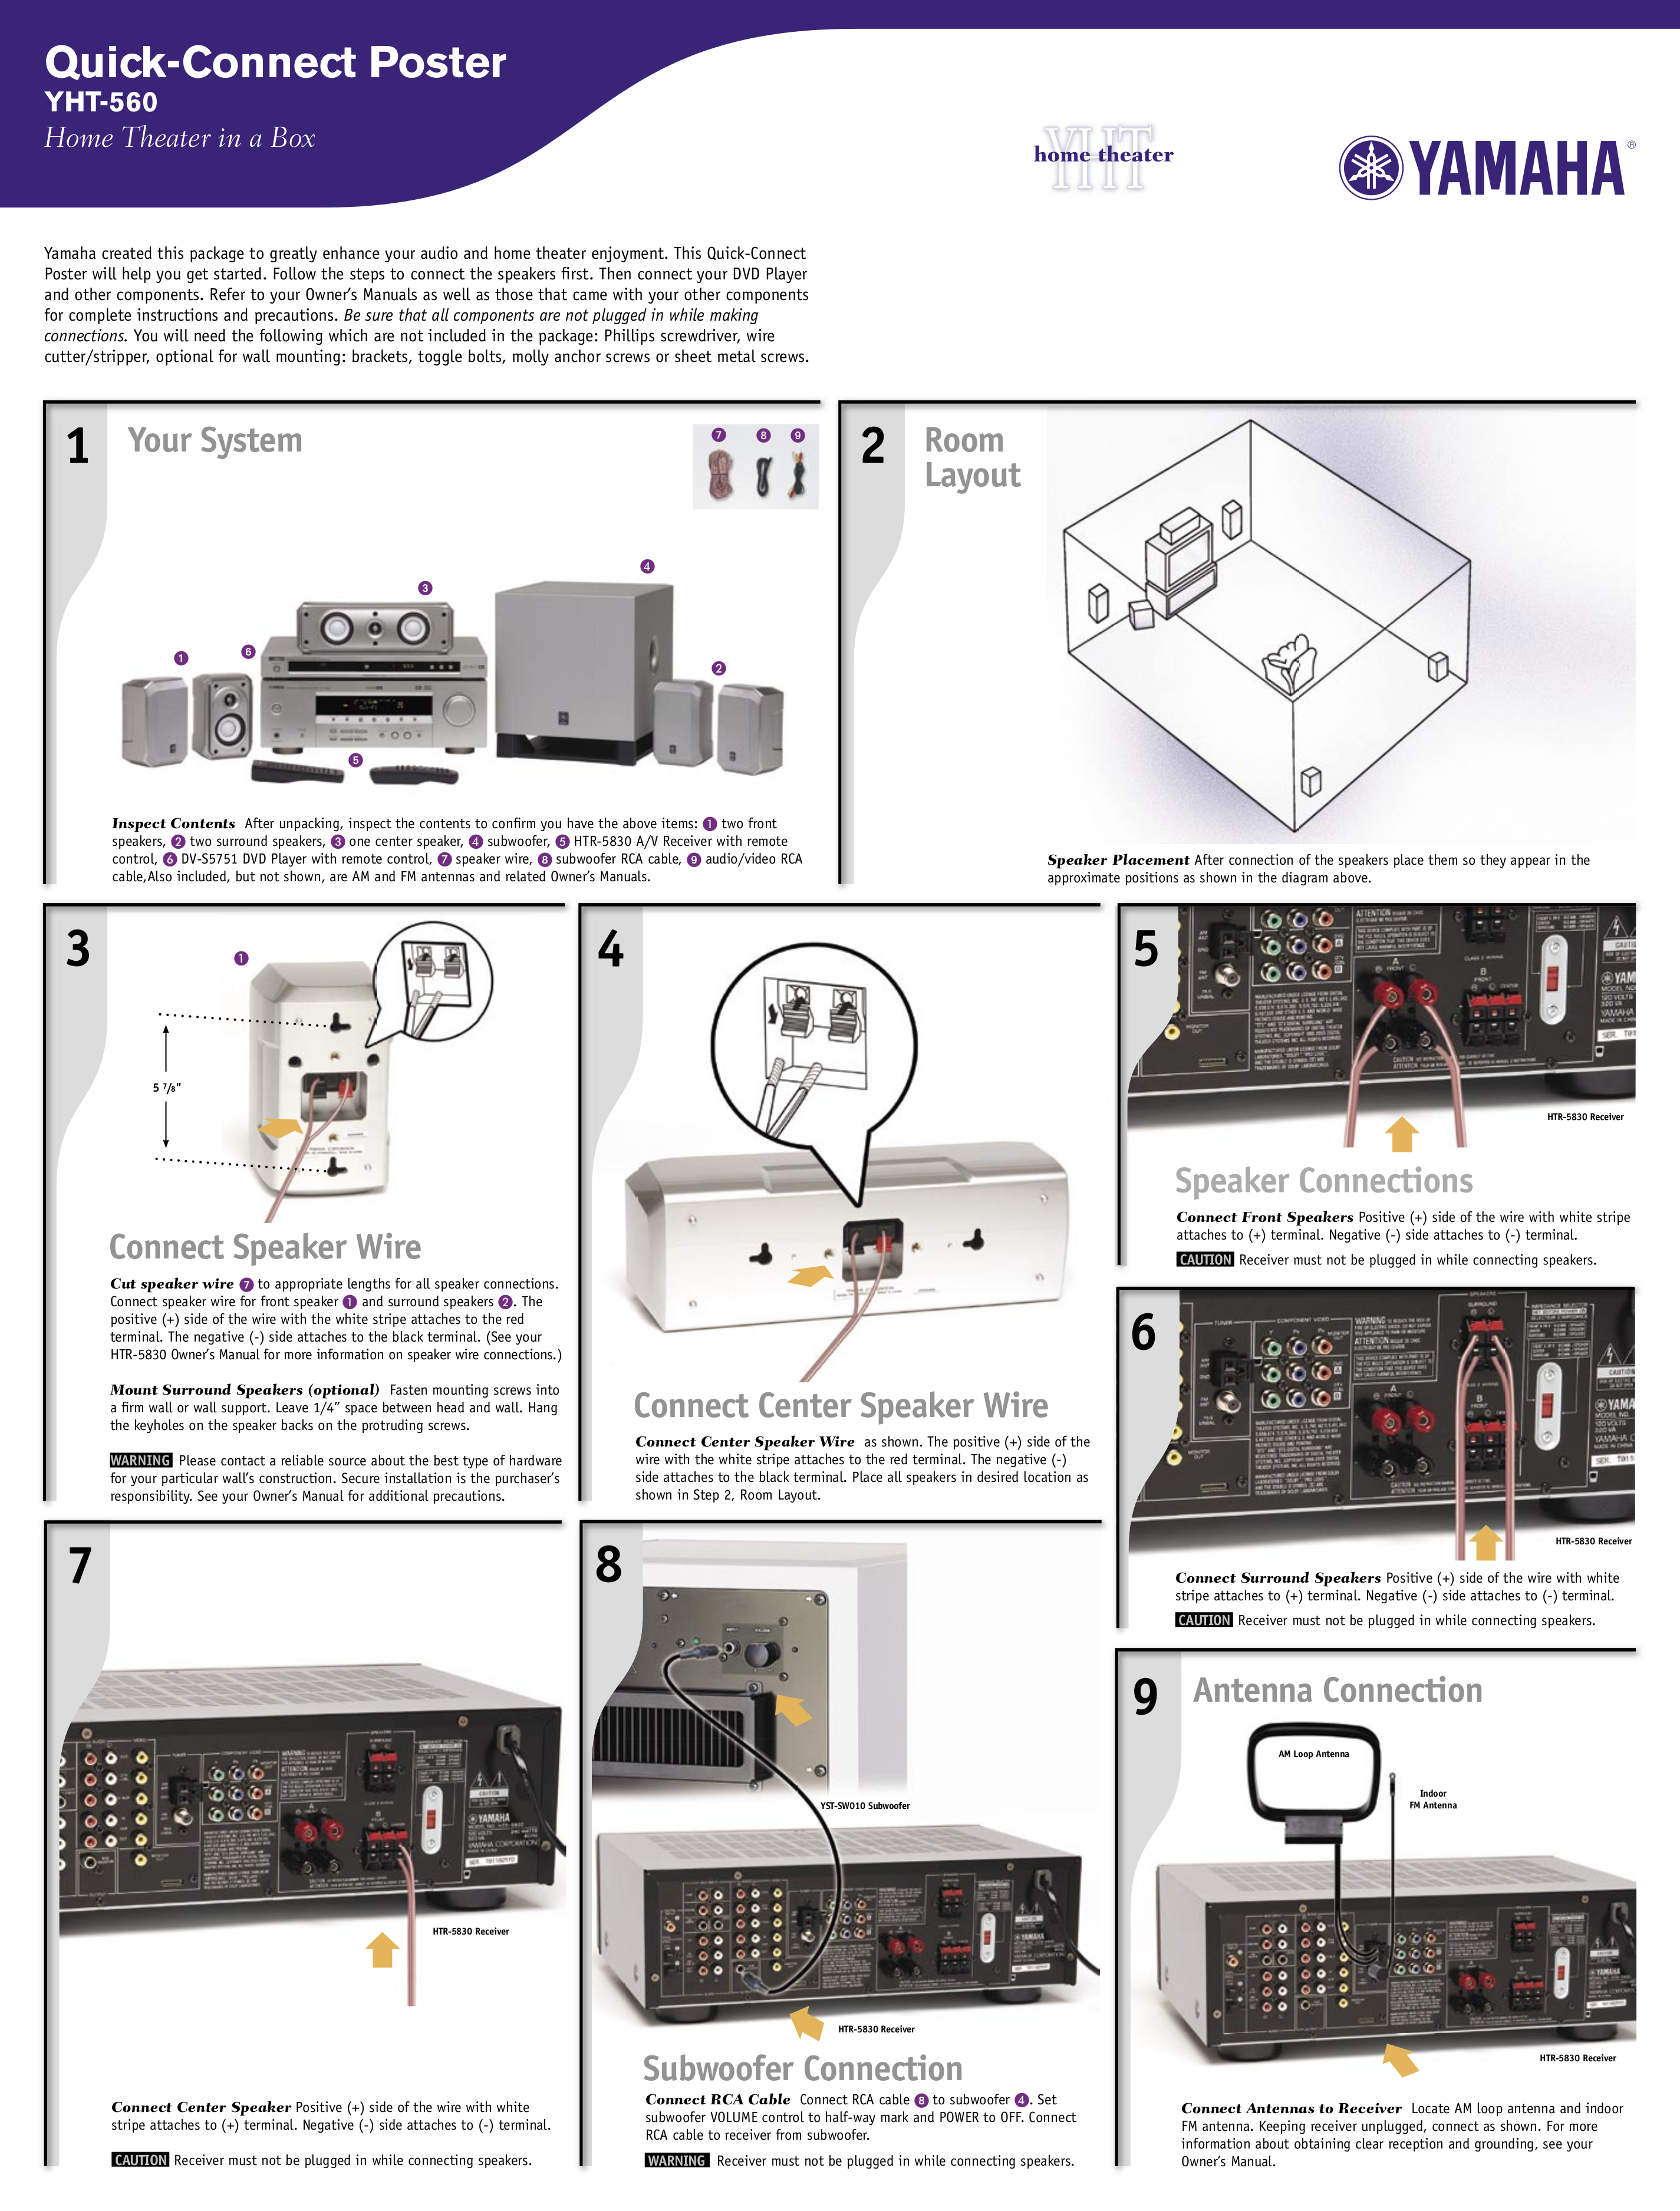 Download free pdf for Yamaha YHT-560 Home Theater manual